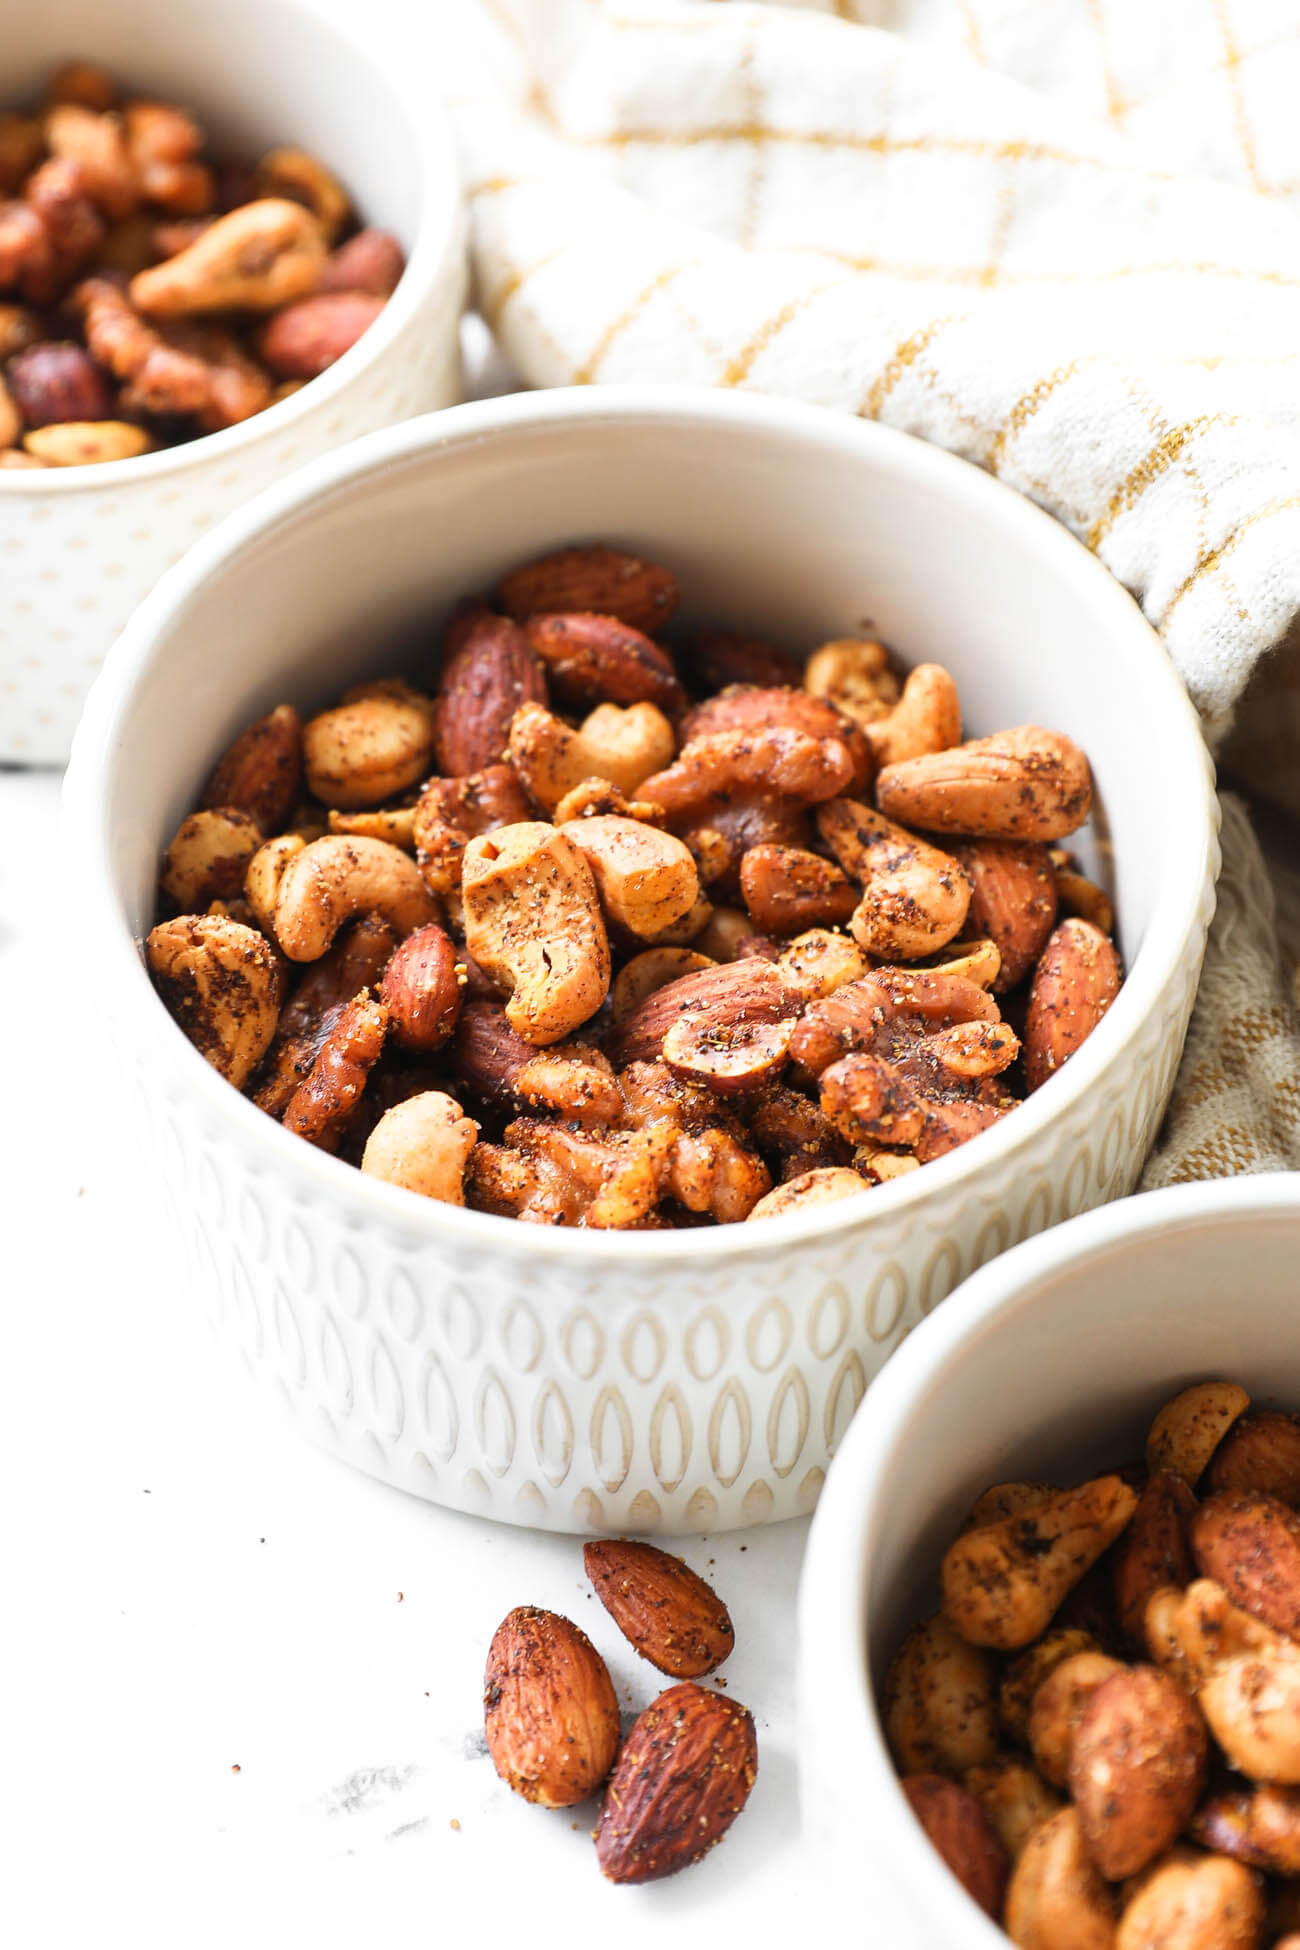 Close up angle shot of ramekin full of homemade spicy nuts including walnuts, almonds, cashews and hazelnuts